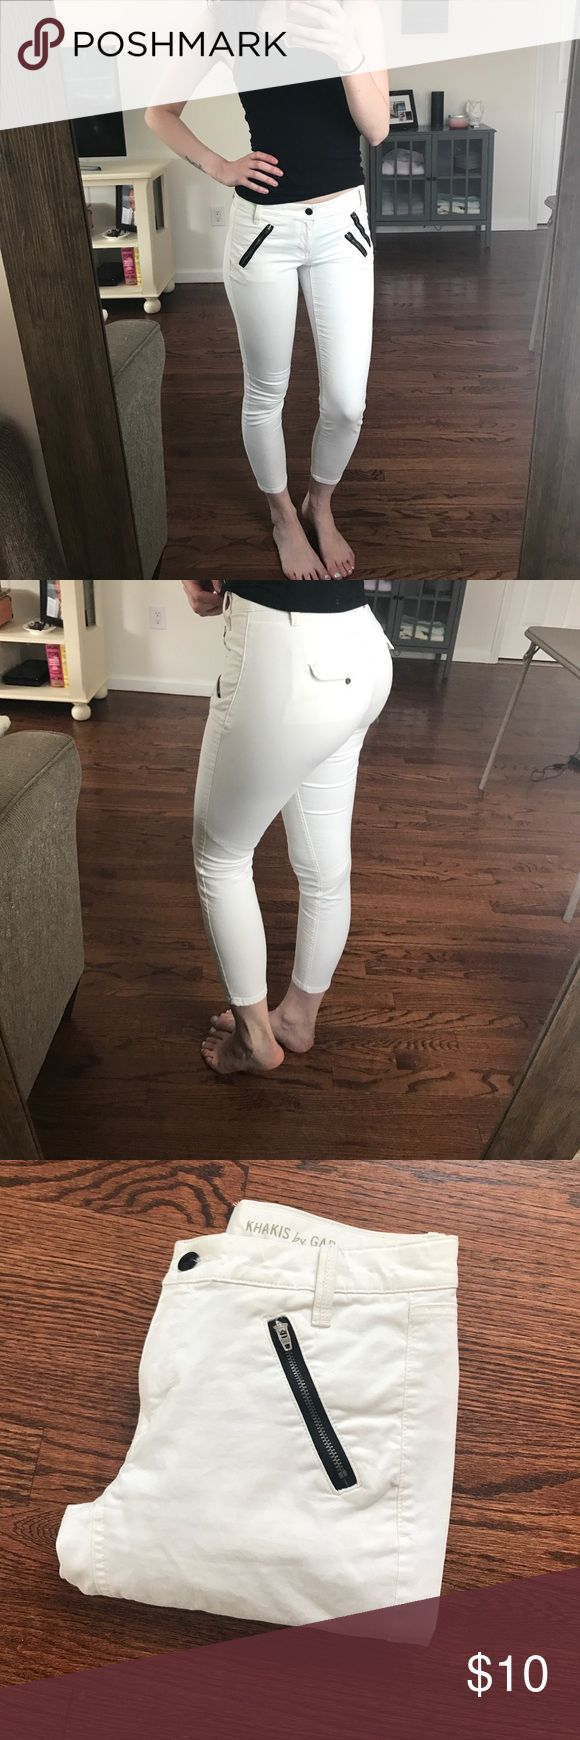 White cropped pants White cropped pants GAP Pants Ankle & Cropped